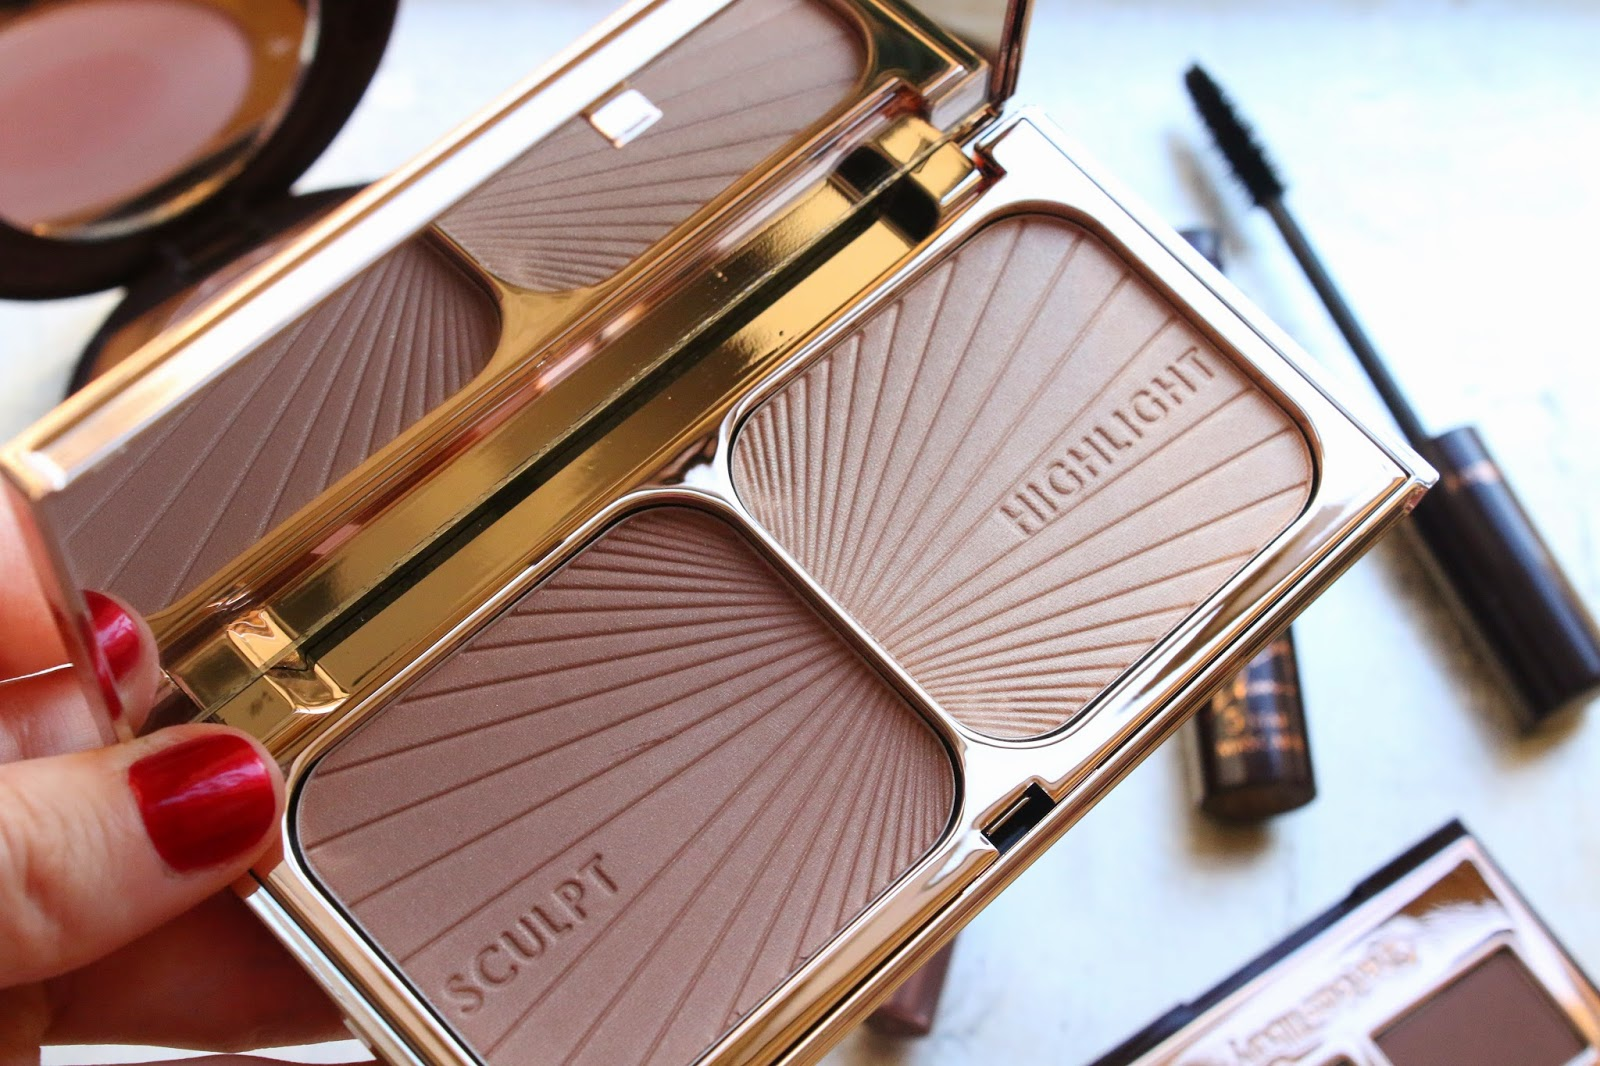 Charlotte Tilbury Bronze and Glow on fair skin